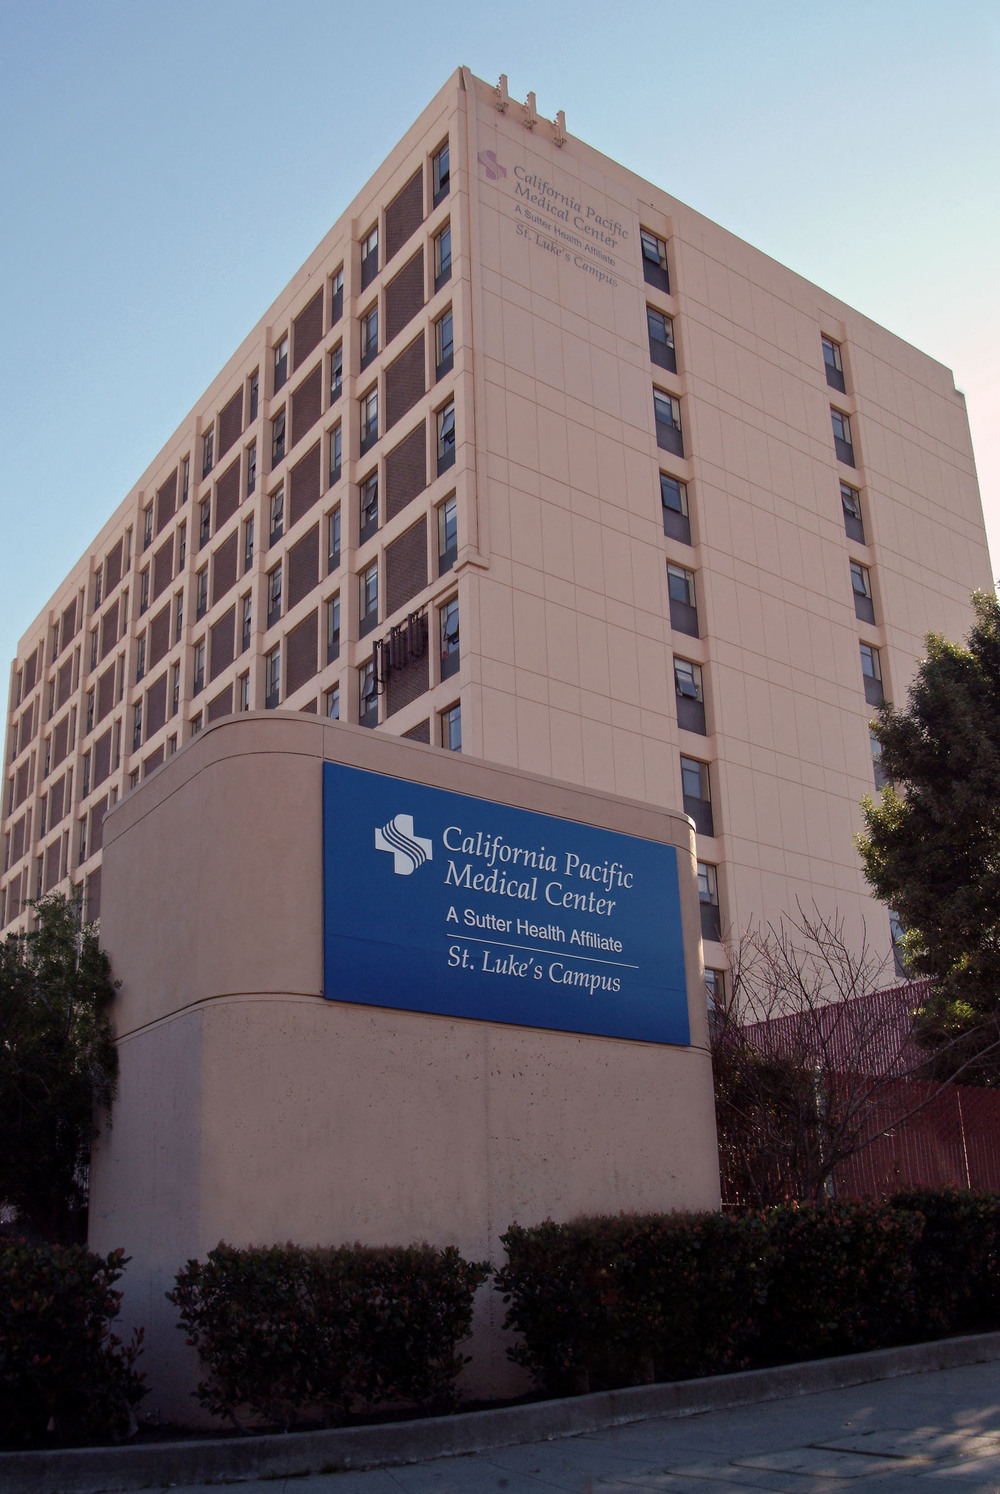 The award-winning California Pacific Medical Center (CPMC) and many of the country's best physicians are just steps away.